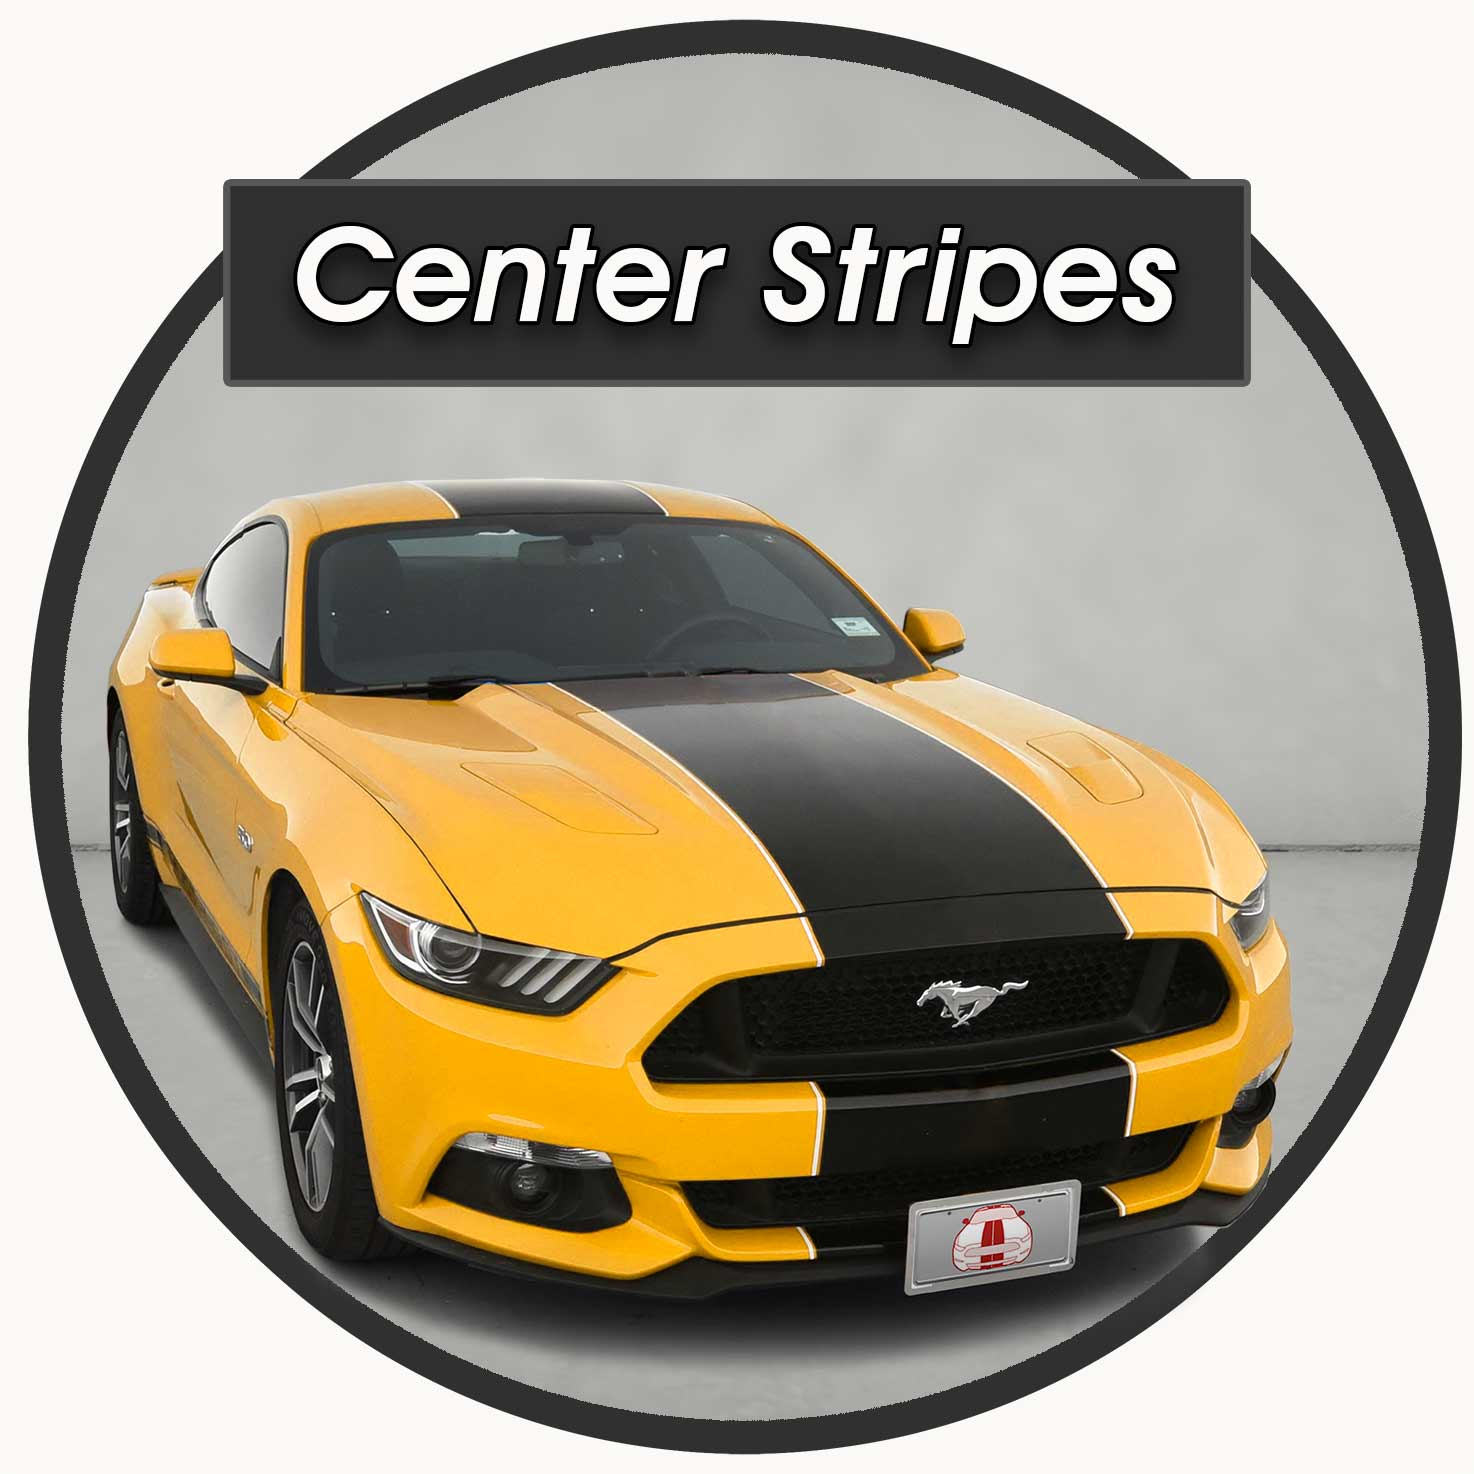 Center Racing Stripes Shelby Super Snake Style on a yellow ford Mustang